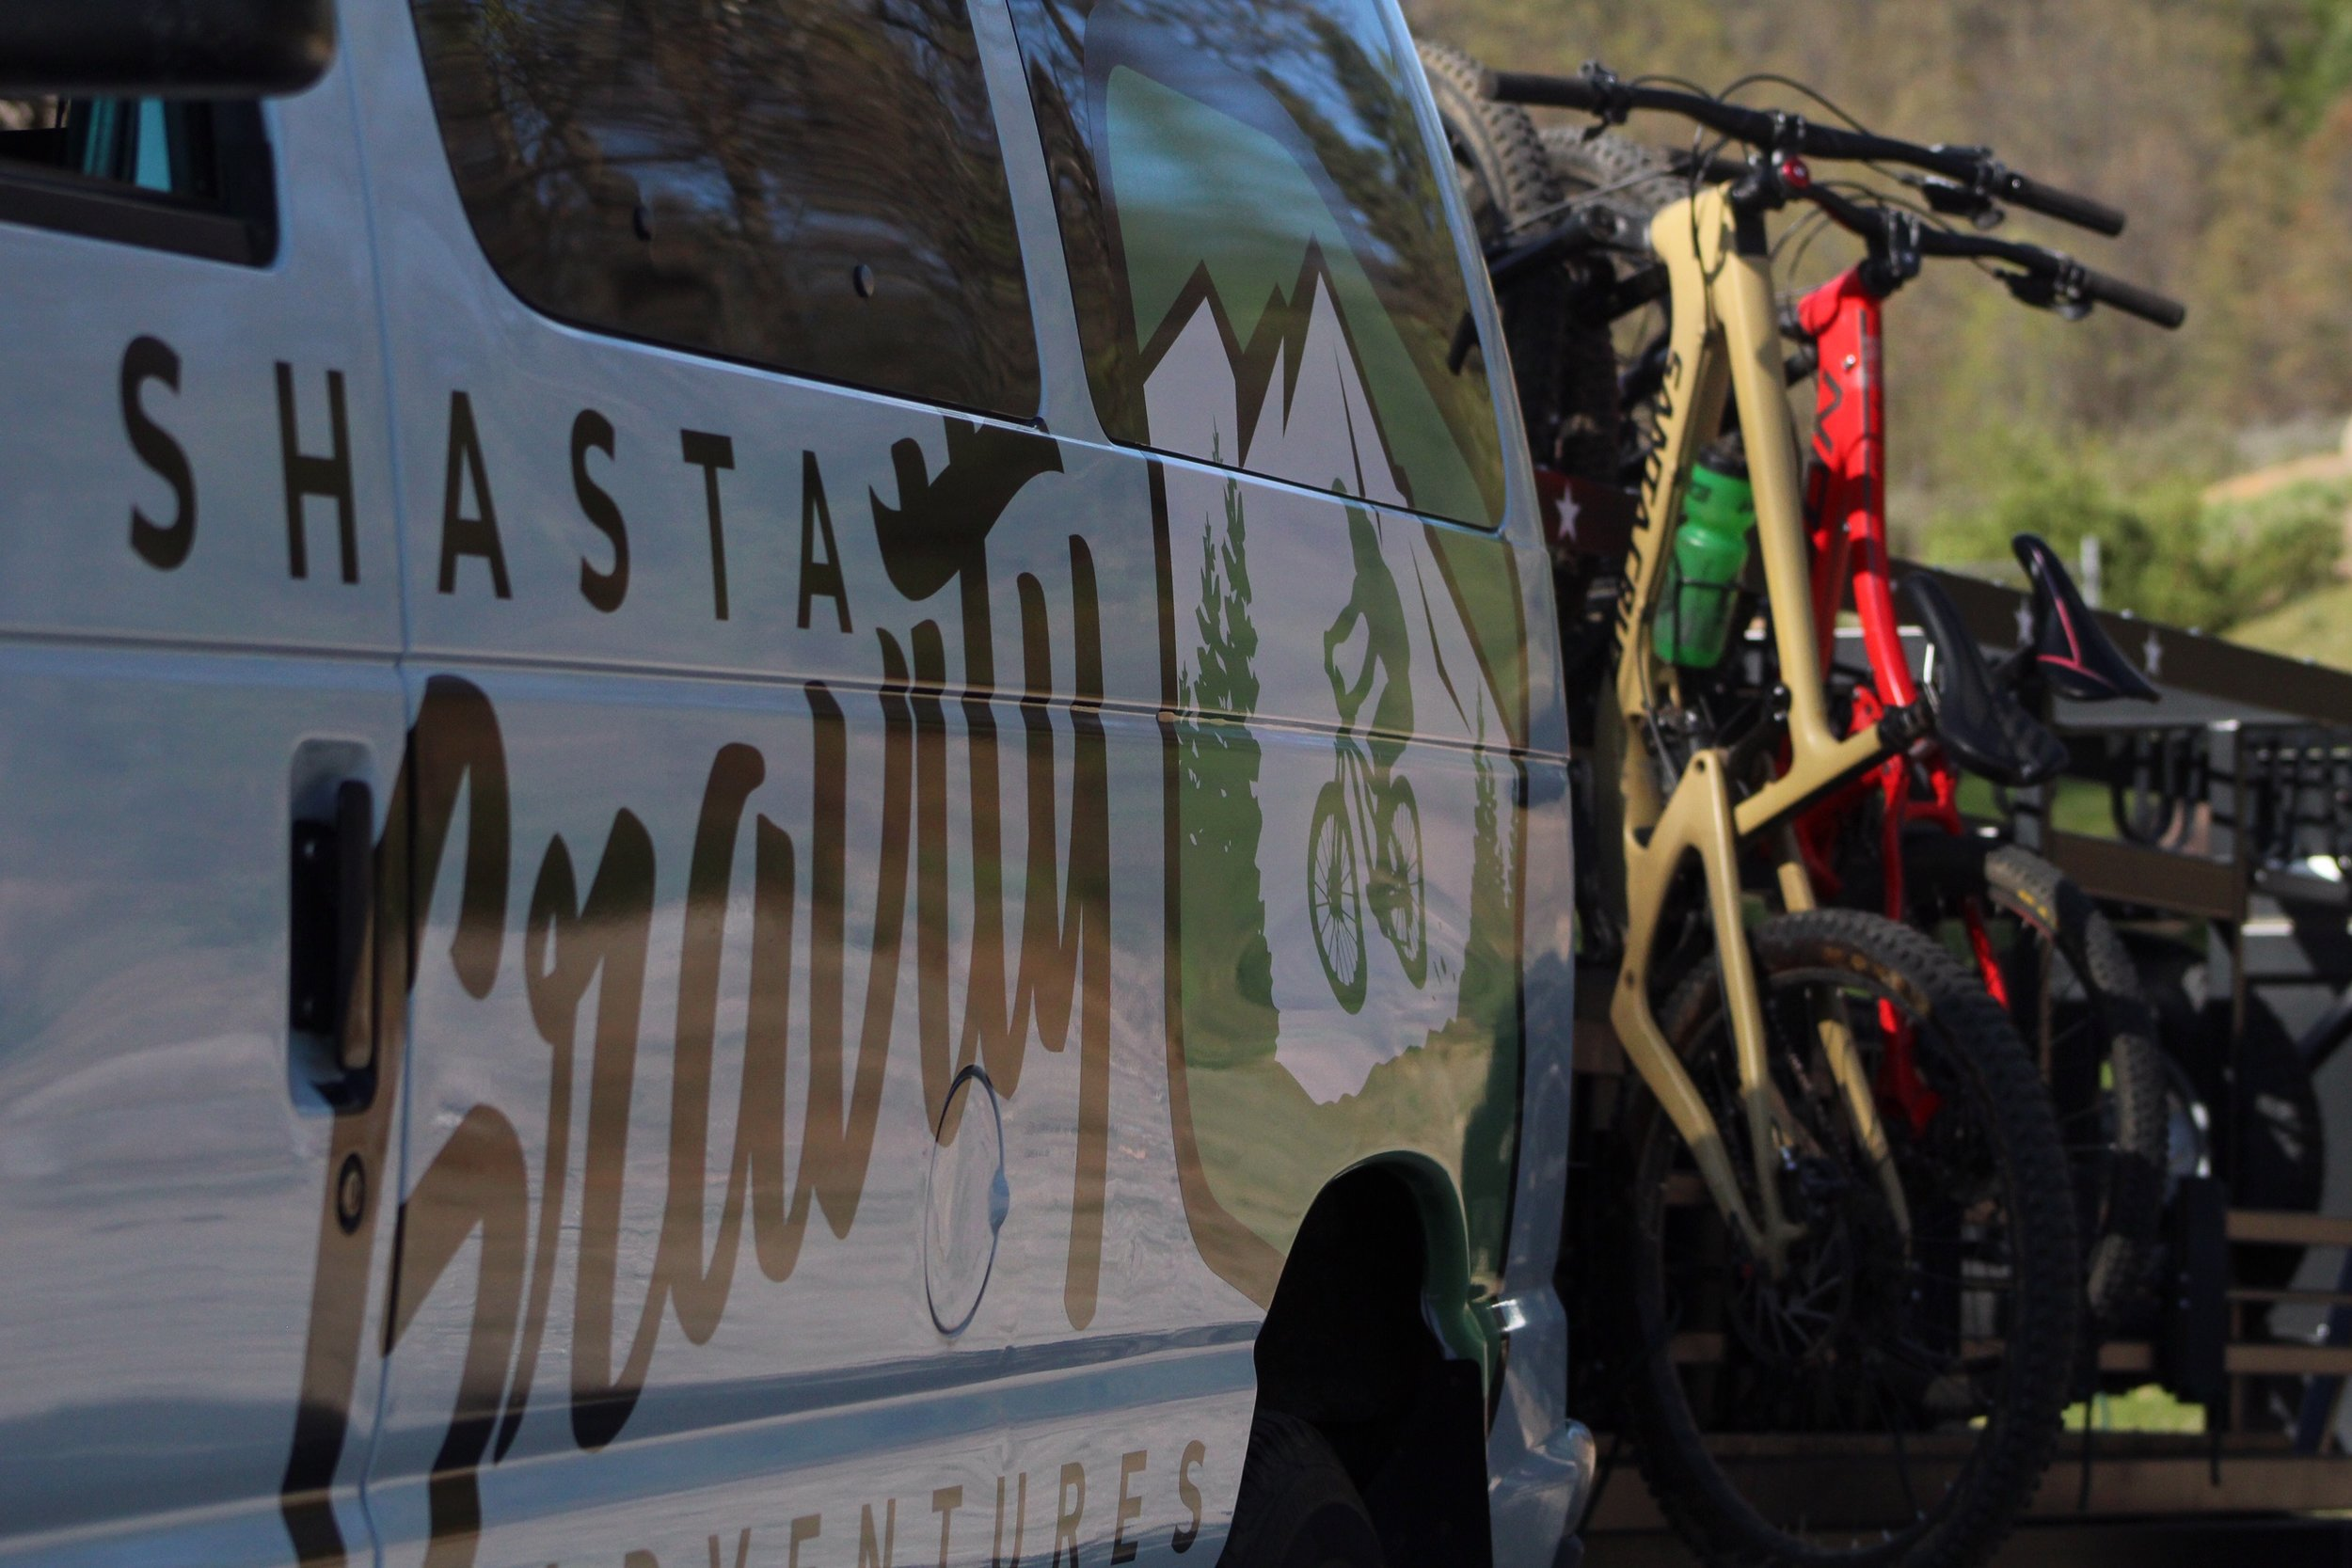 Shasta Gravity Shuttles - The Cure For The Common Ride